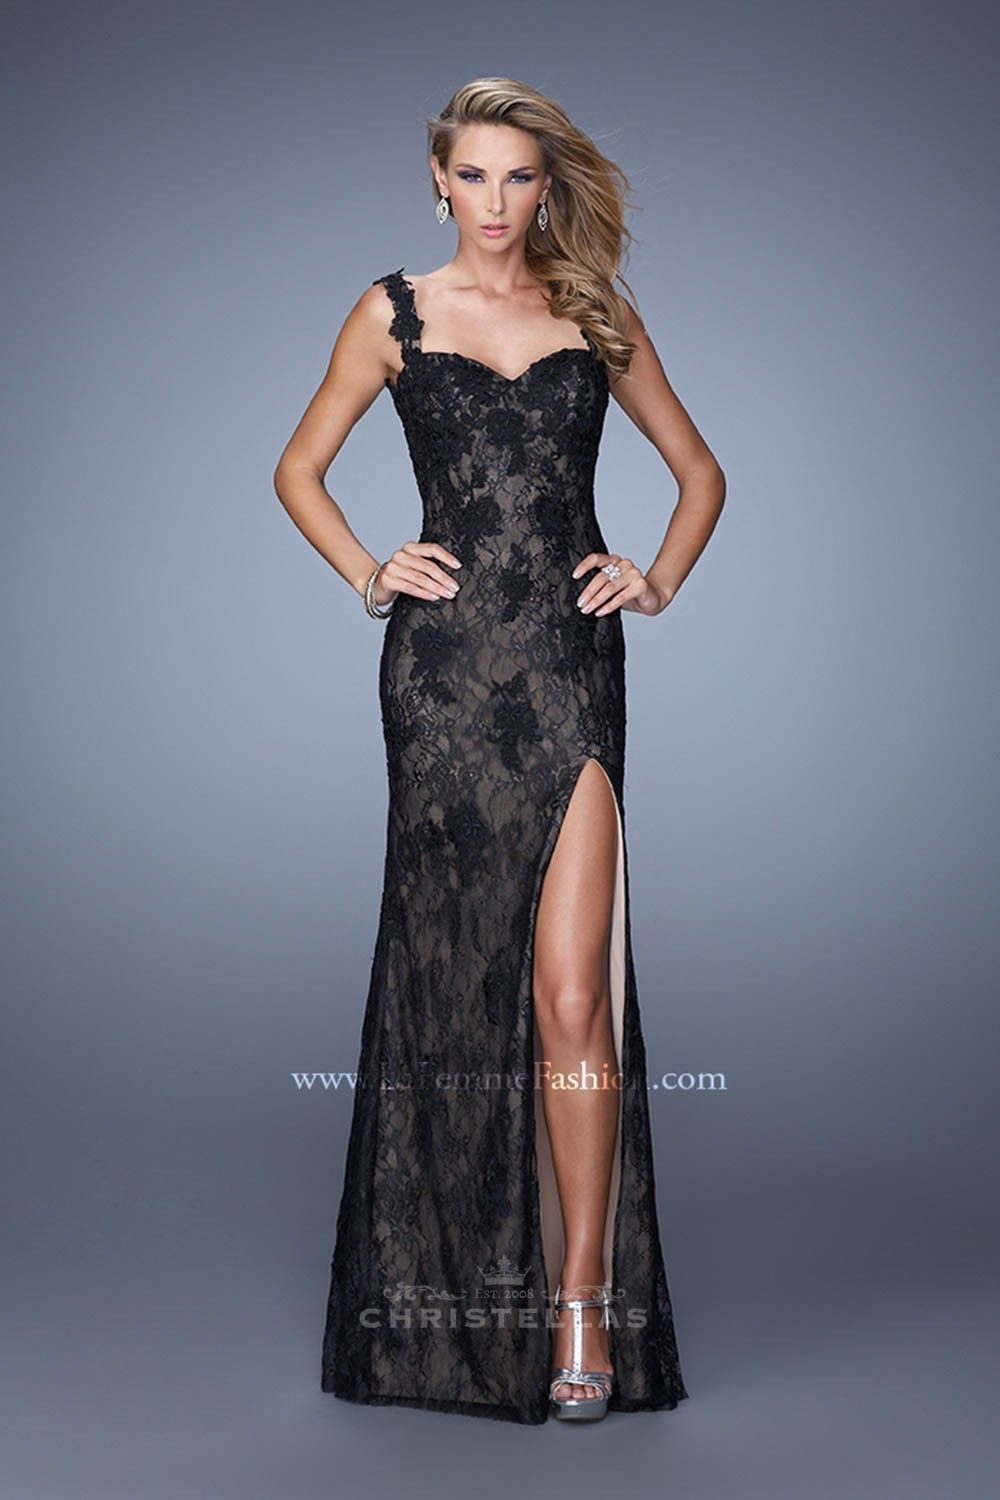 Low and daring this fully open back is breathtaking la femme